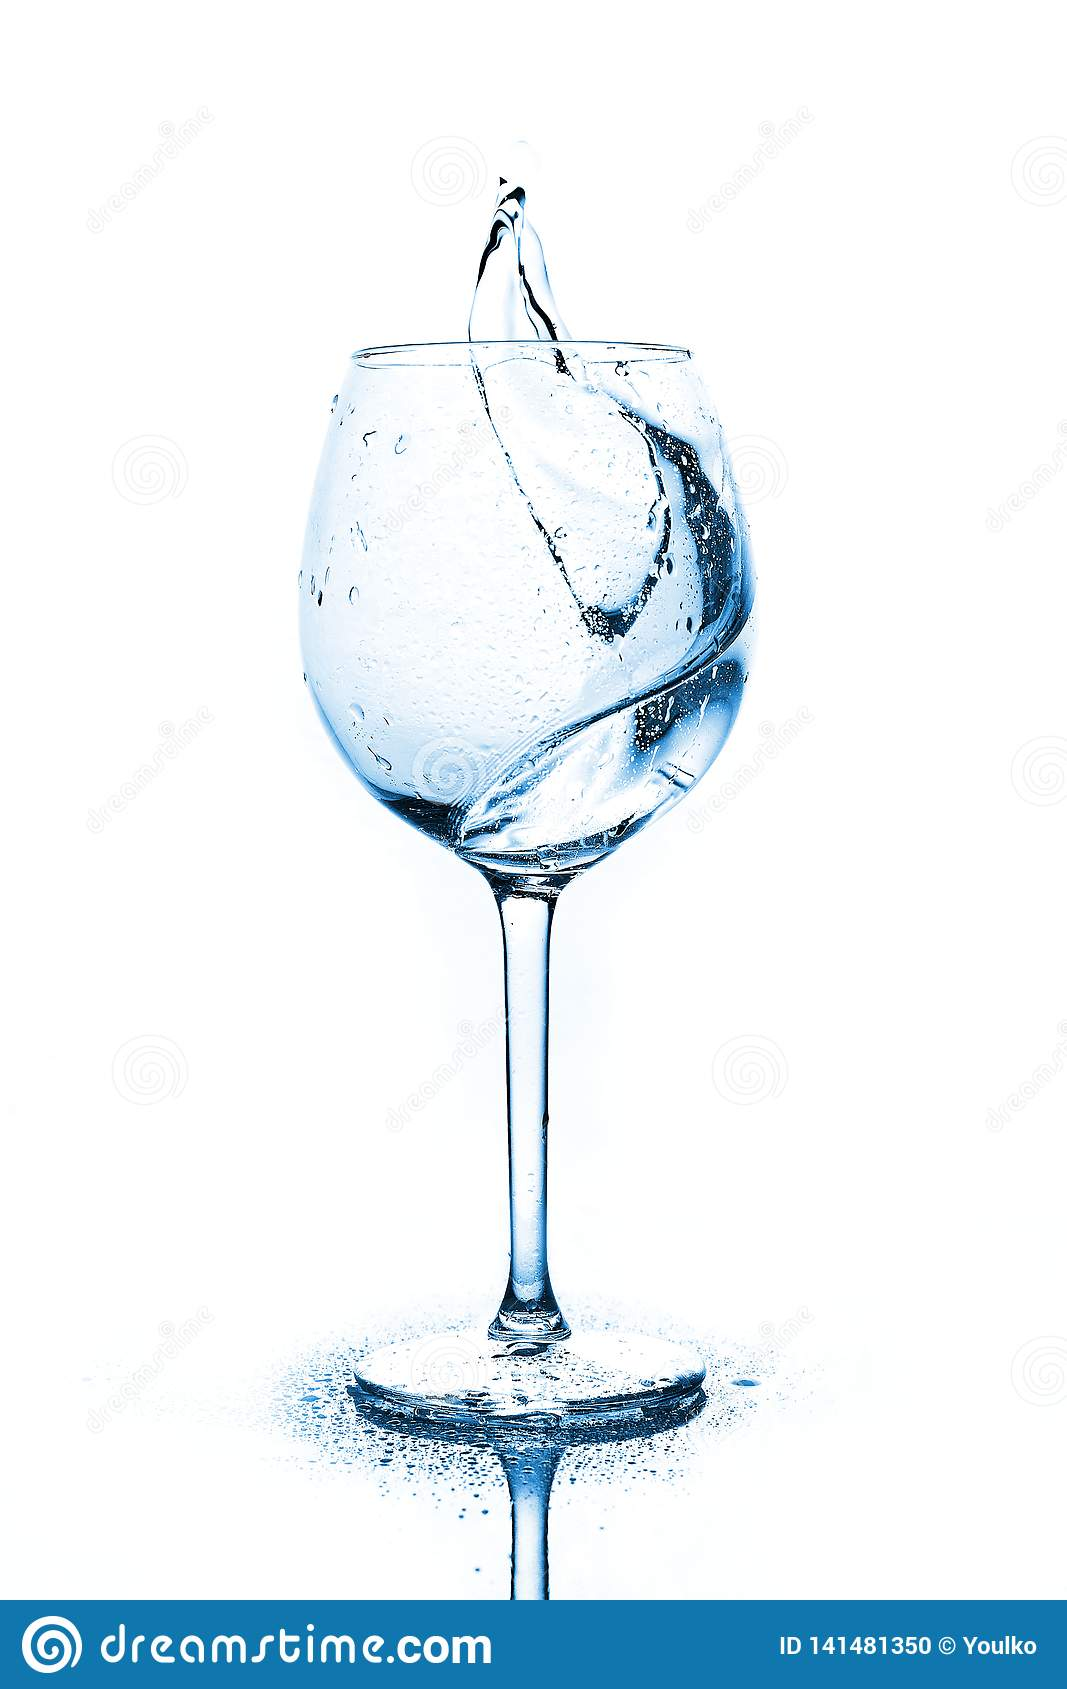 Blue splashes of clean water in the wine glass. A spray of water. Drinking water